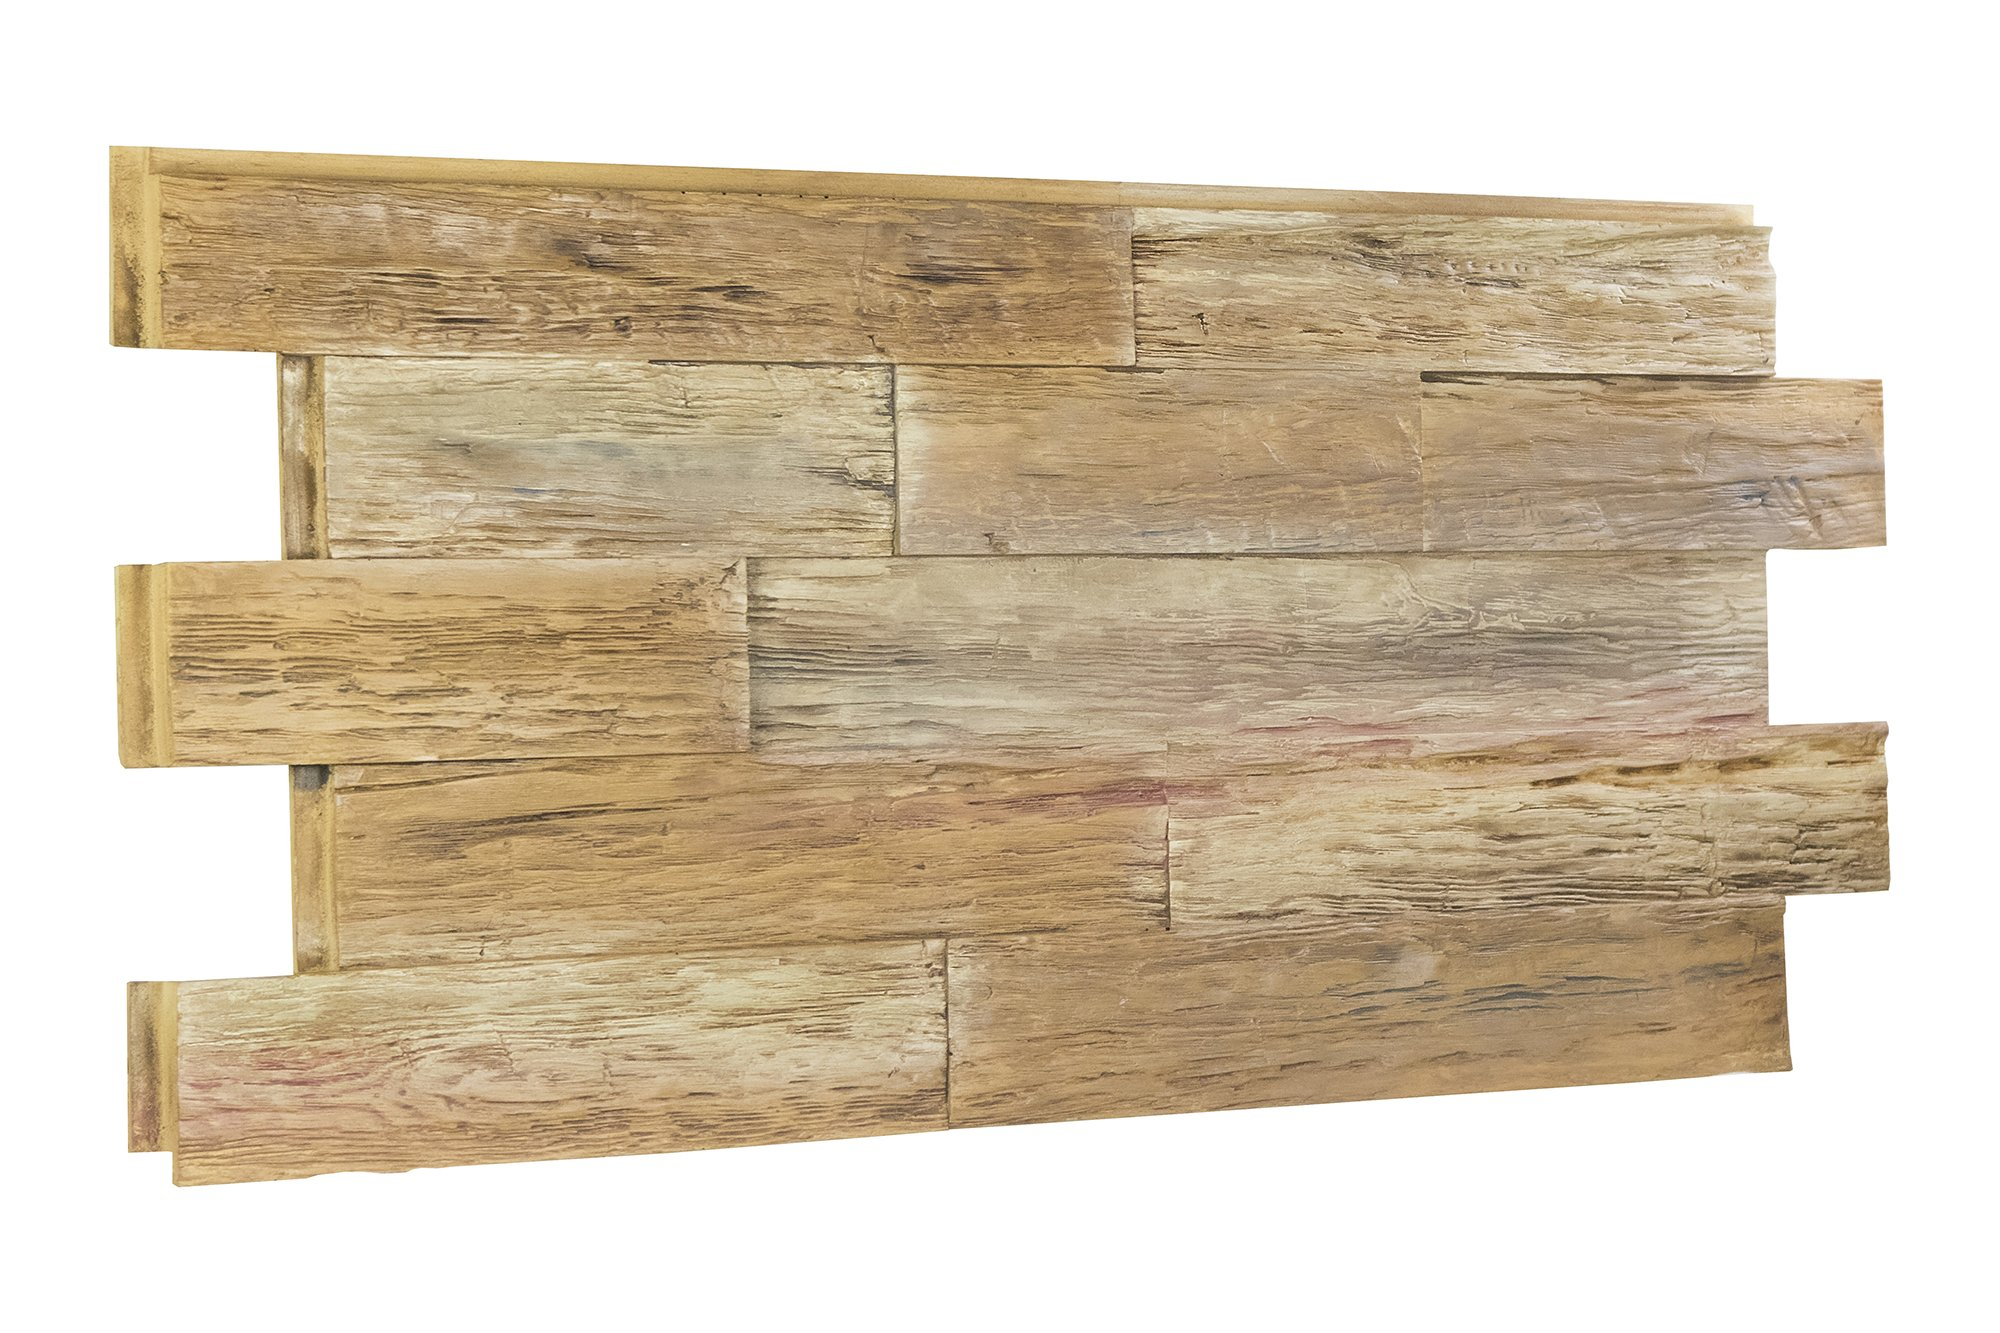 Time Weathered Rustic Faux Wood Paneling - 7.6 SQ Ft (Steak-House)